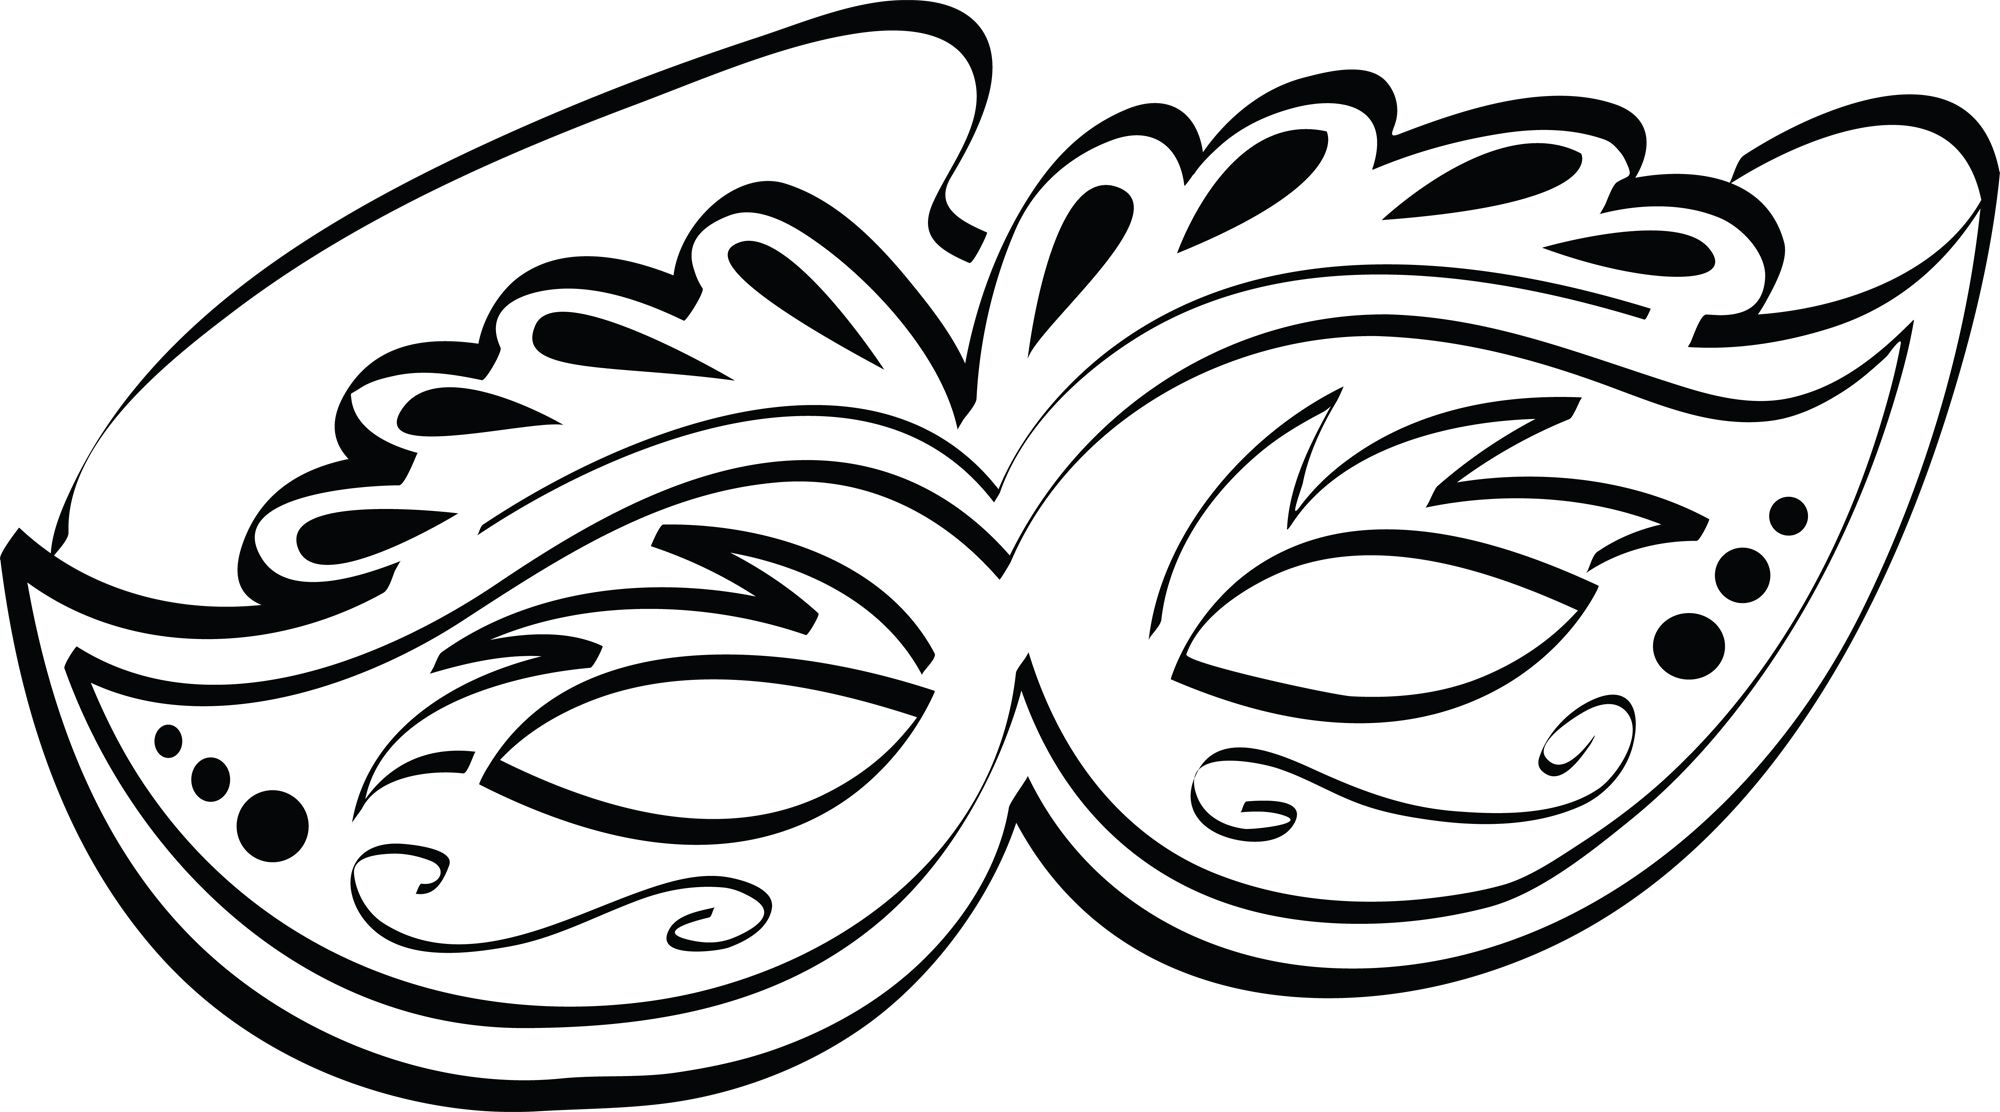 Adult Best Mardi Gras Mask Coloring Pages Images cute mardi gras masks and on pinterest gallery images